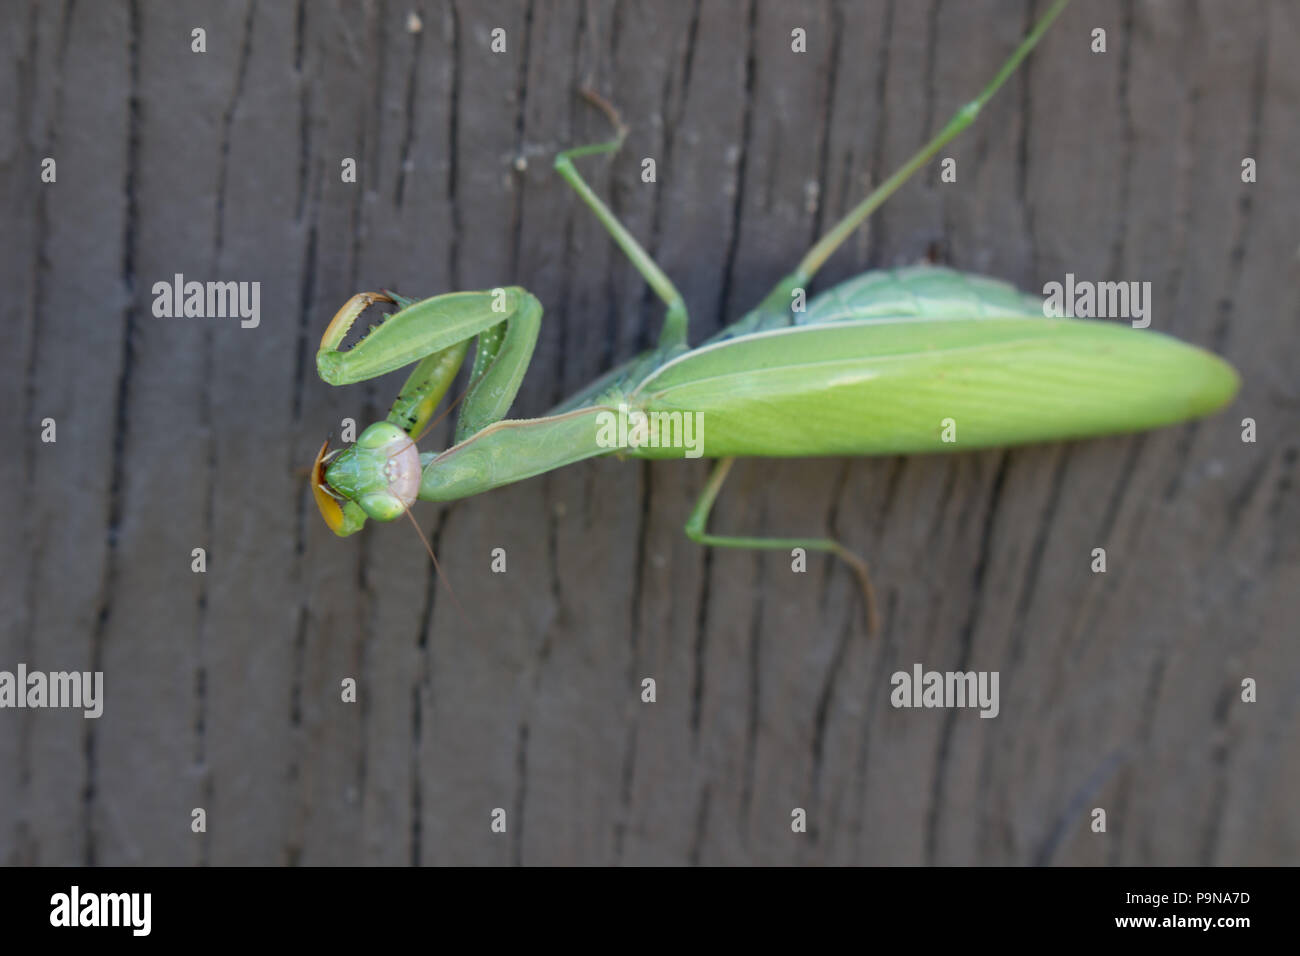 A preying mantis on a wall looking up, right at you Stock Photo